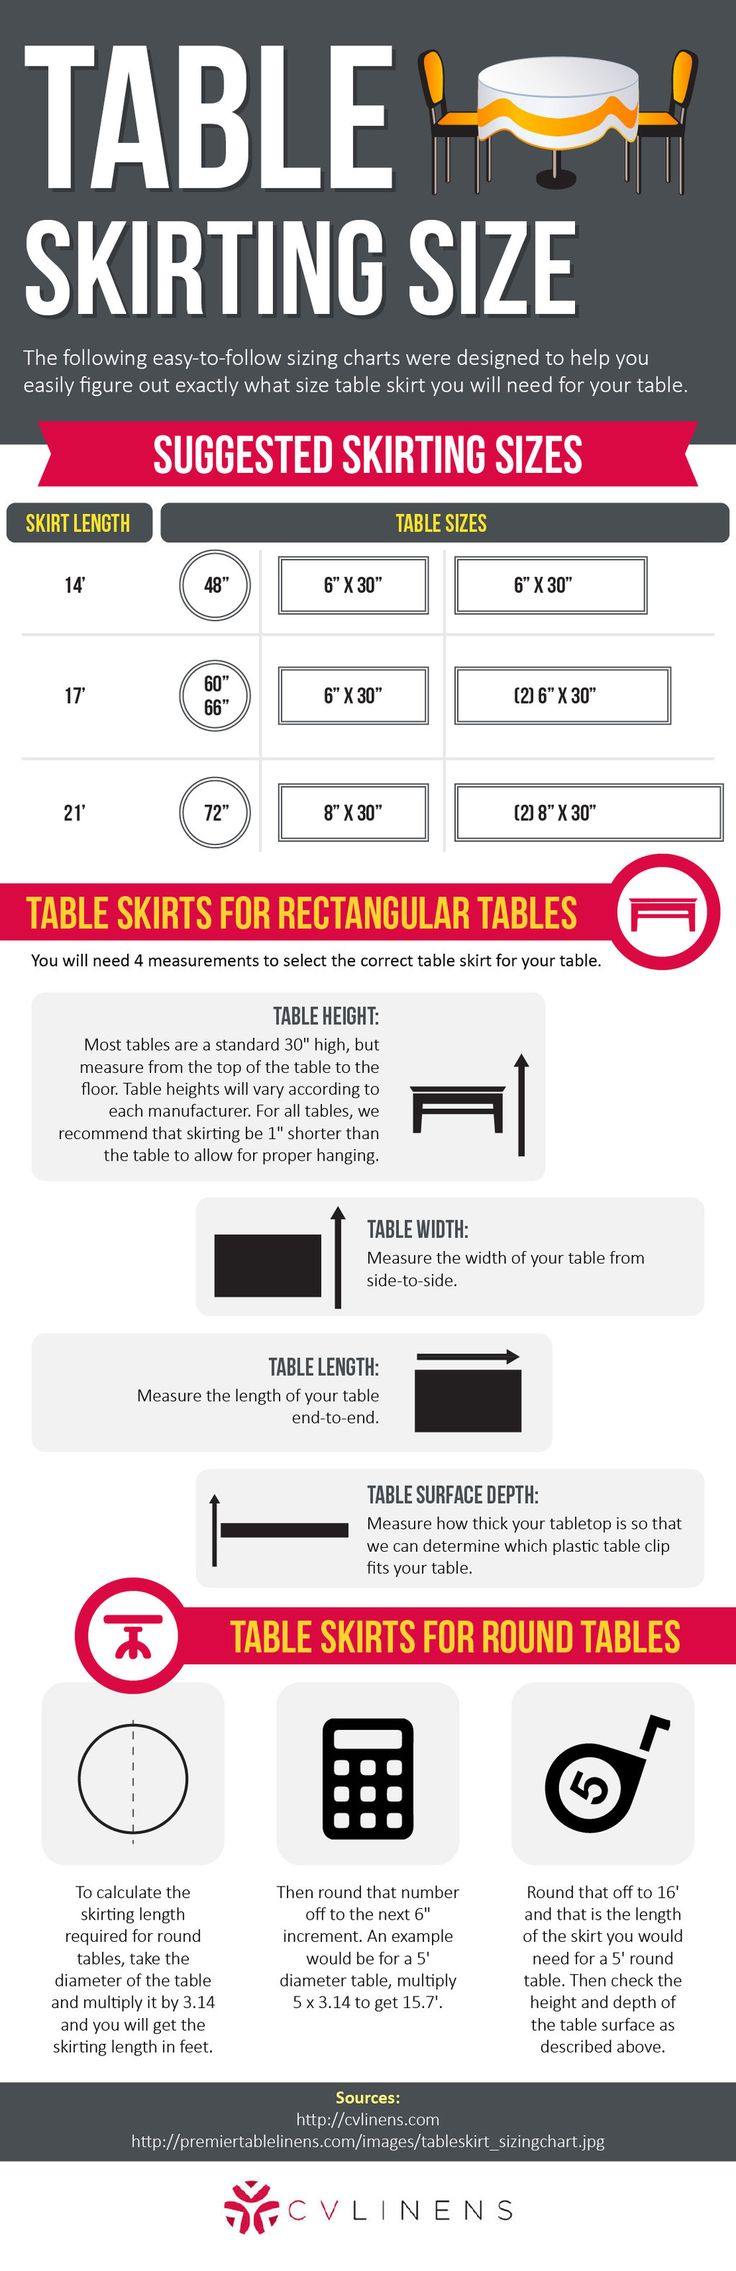 Our guide to Table Skirting Size! From Curly Willow to Lace to Gathered Lamour, enhance your next party's look with a table skirt.